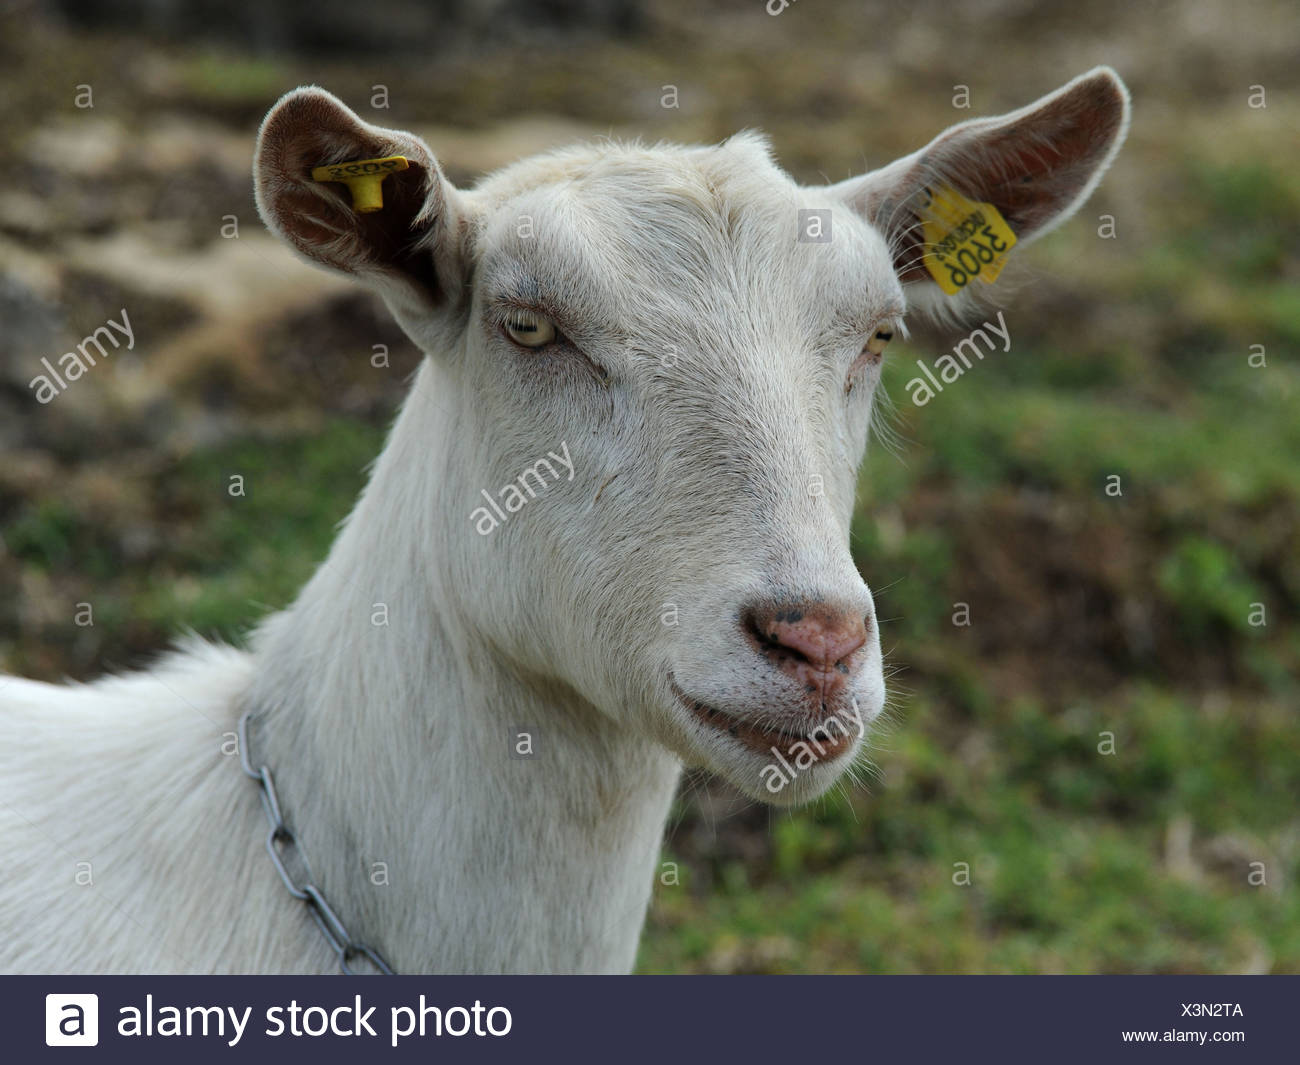 A white goat called a British Saanen with a clean white face. Stock Photo